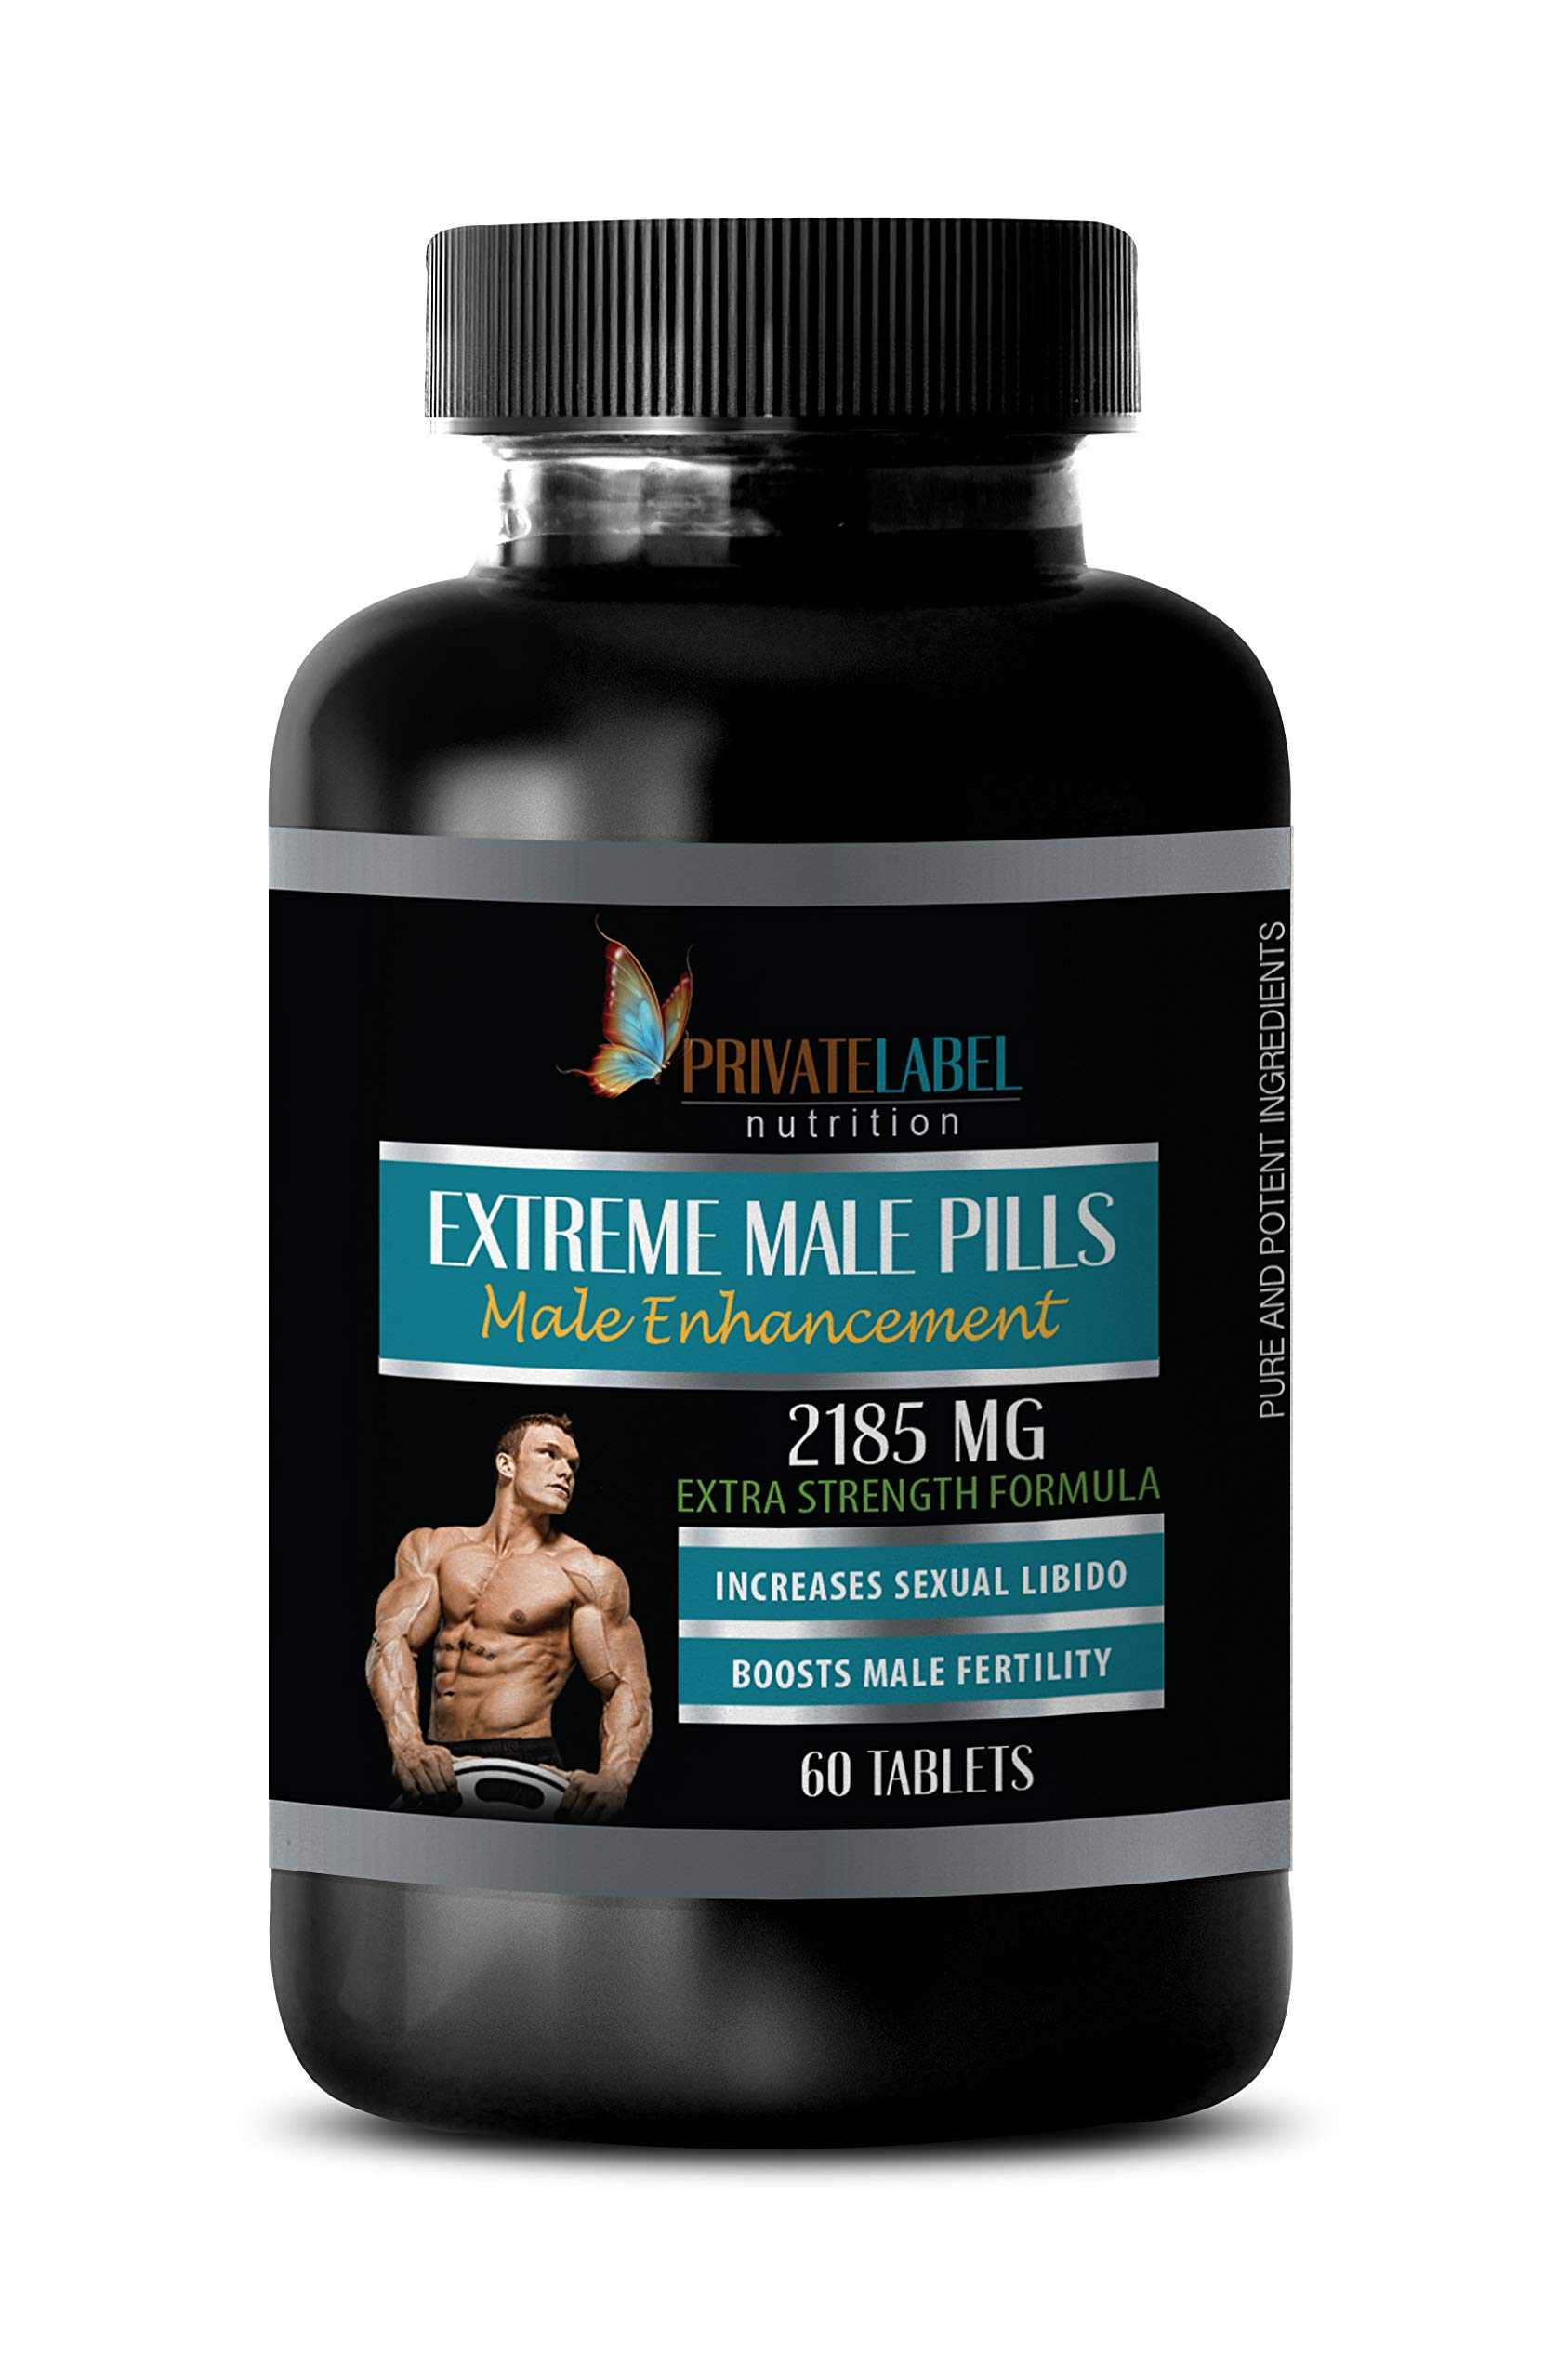 libido Herbal Supplement - Extreme Male Pills 2185 Mg - Extra Strength Formula - tribulus terrestris Extract - 1 Bottle 60 Tablets